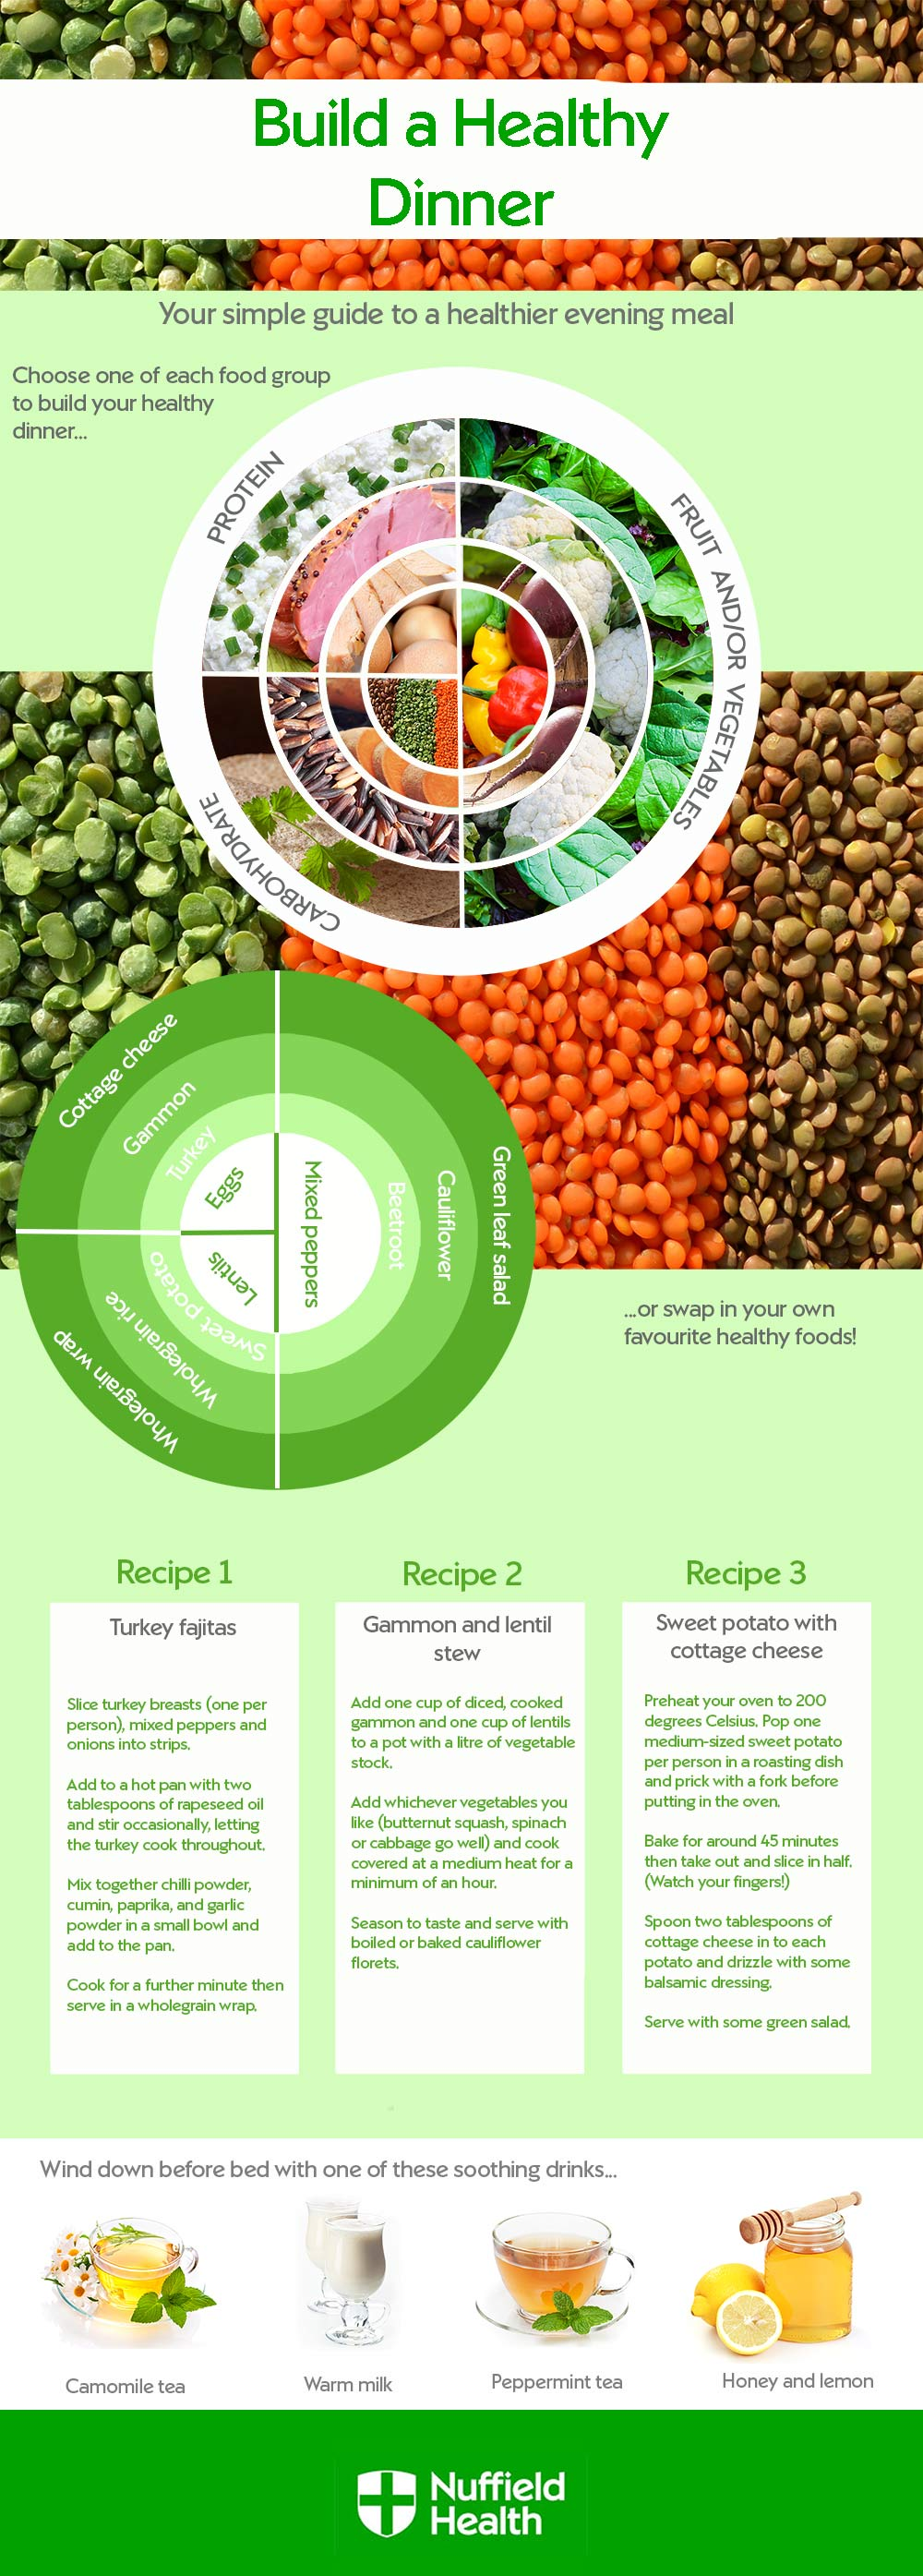 Build a healthy dinner infographic 2018